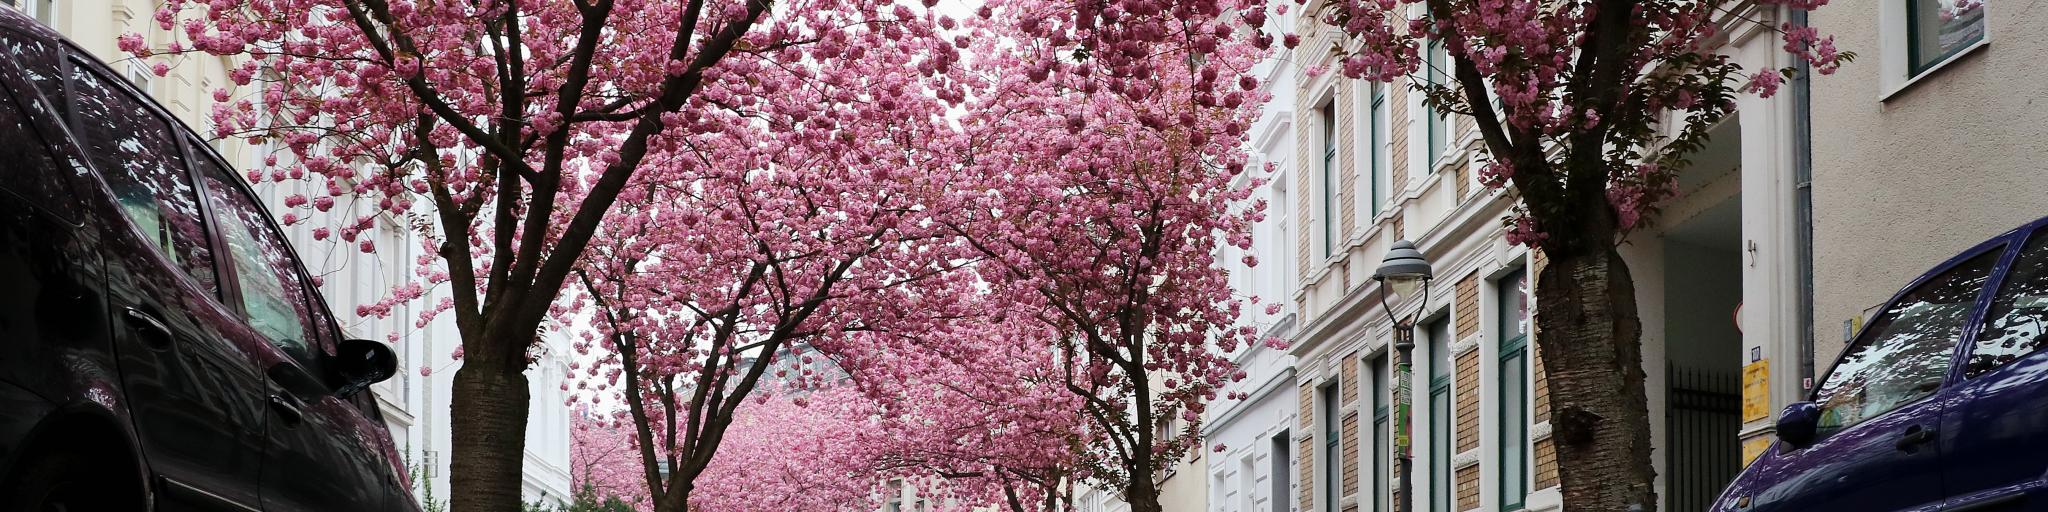 Bright pink cherry blossoms line a street in Bonn, Germany